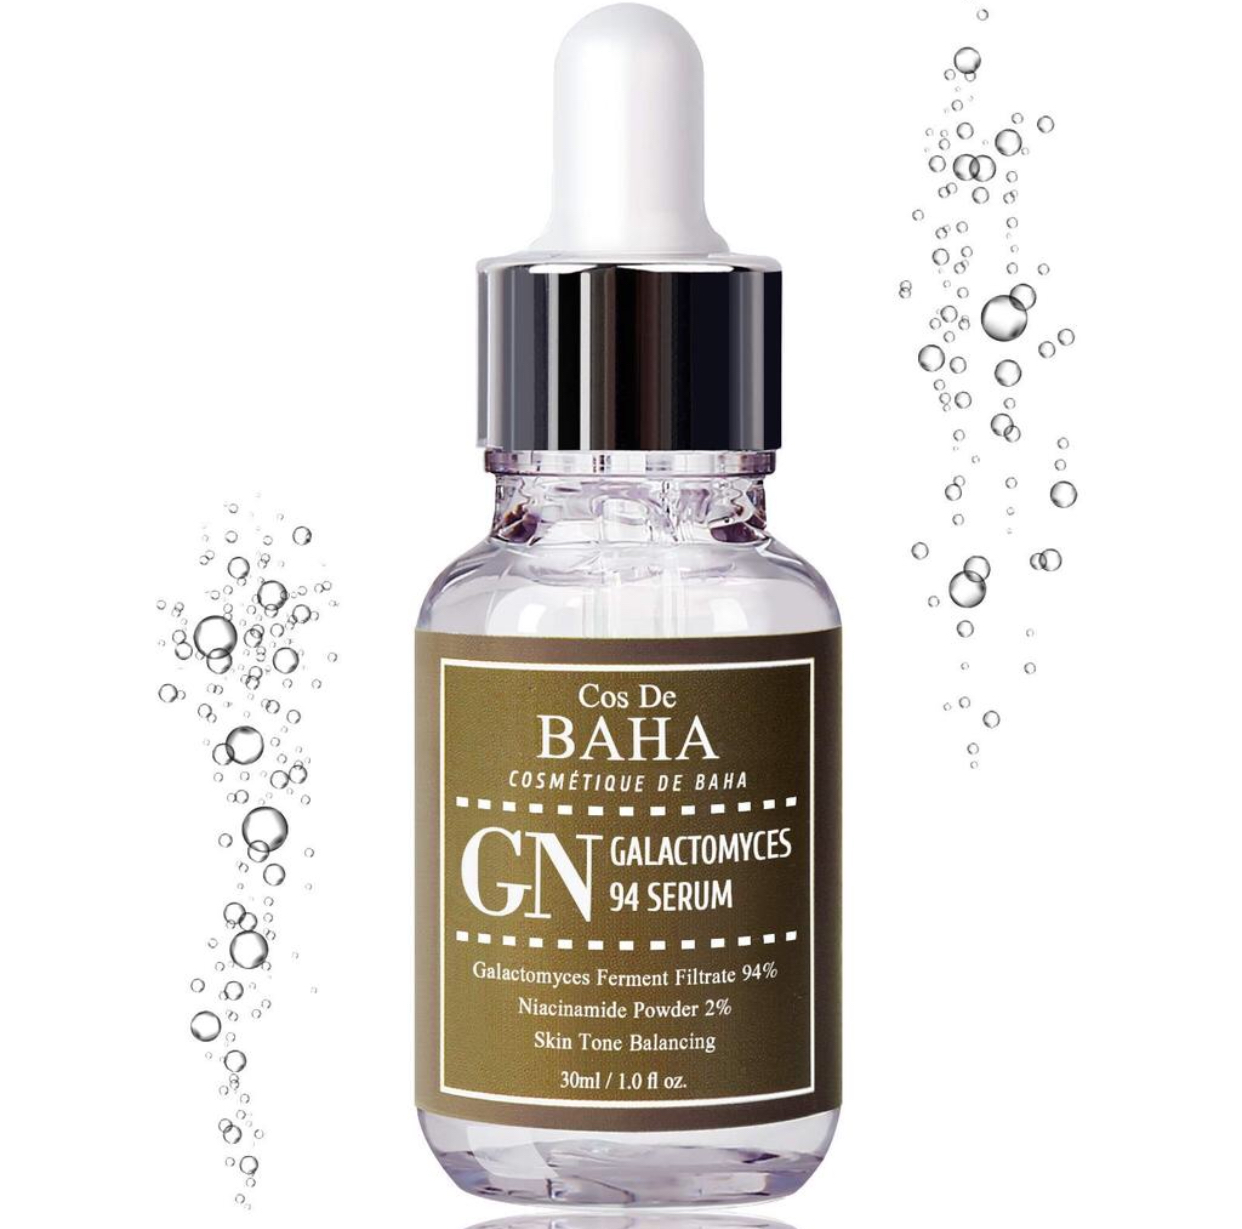 Cos De BAHA Galactomyces 94% Treatment Essence Serum